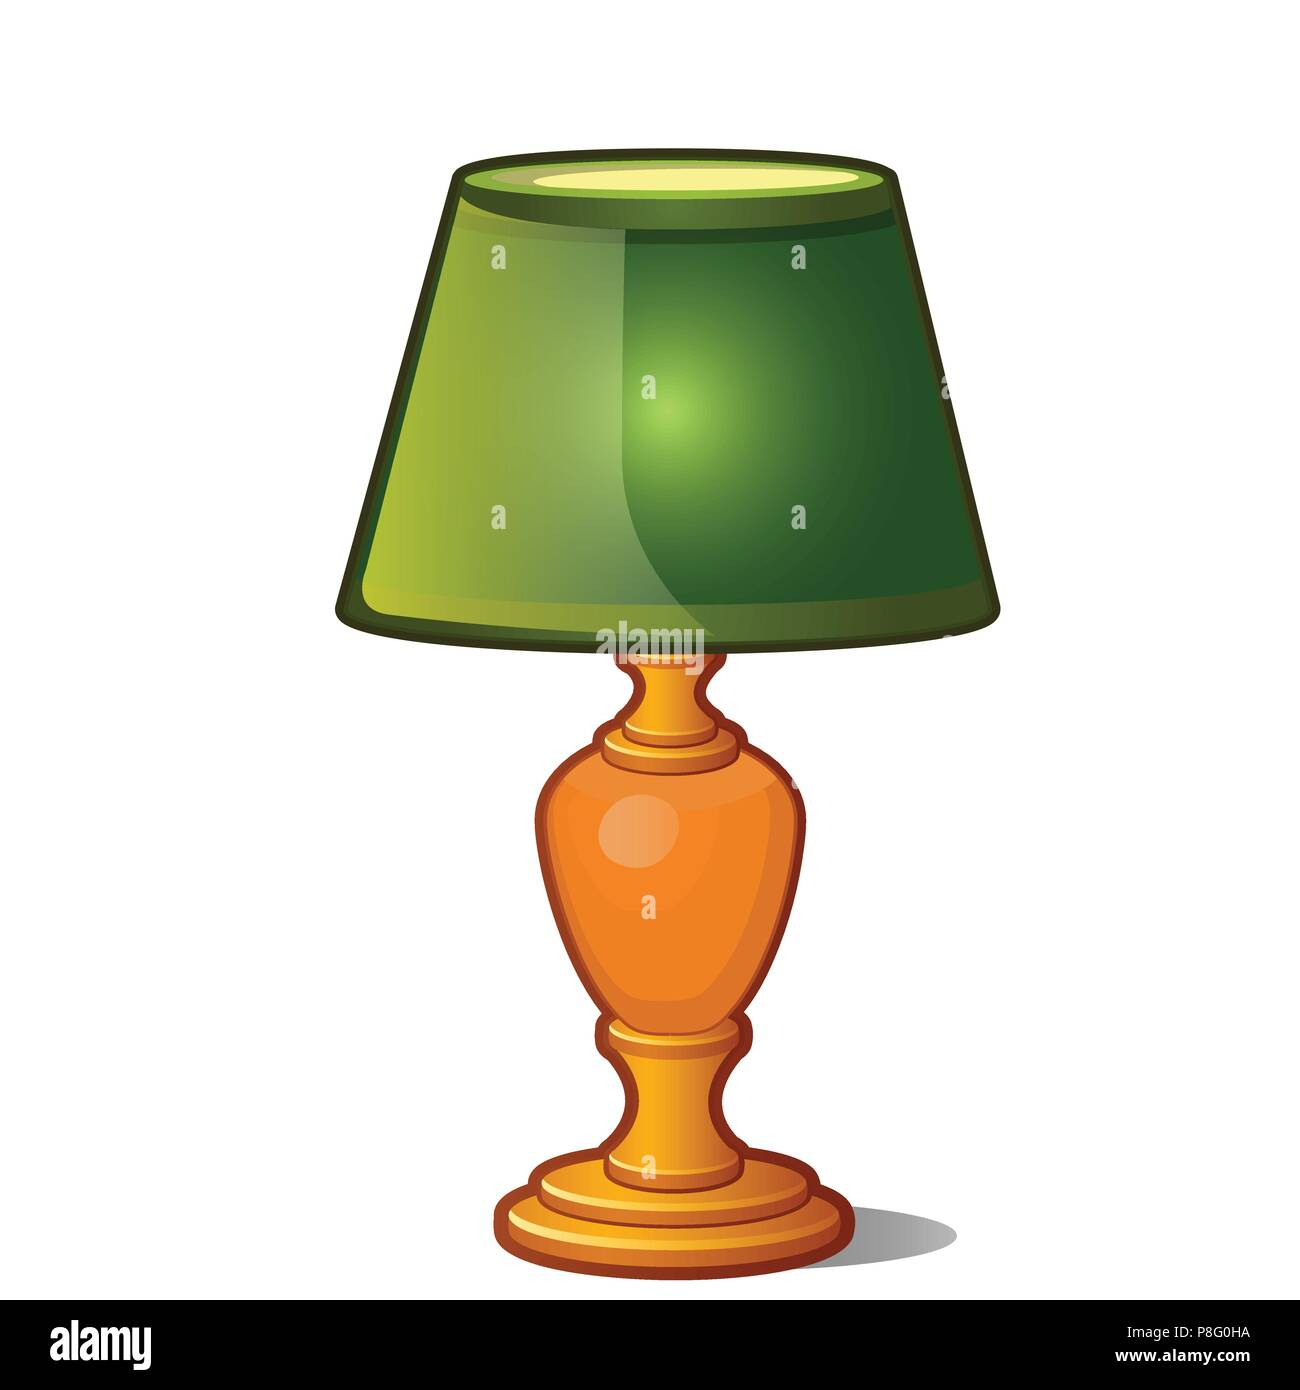 Lampshade Drawing High Resolution Stock Photography And Images Alamy